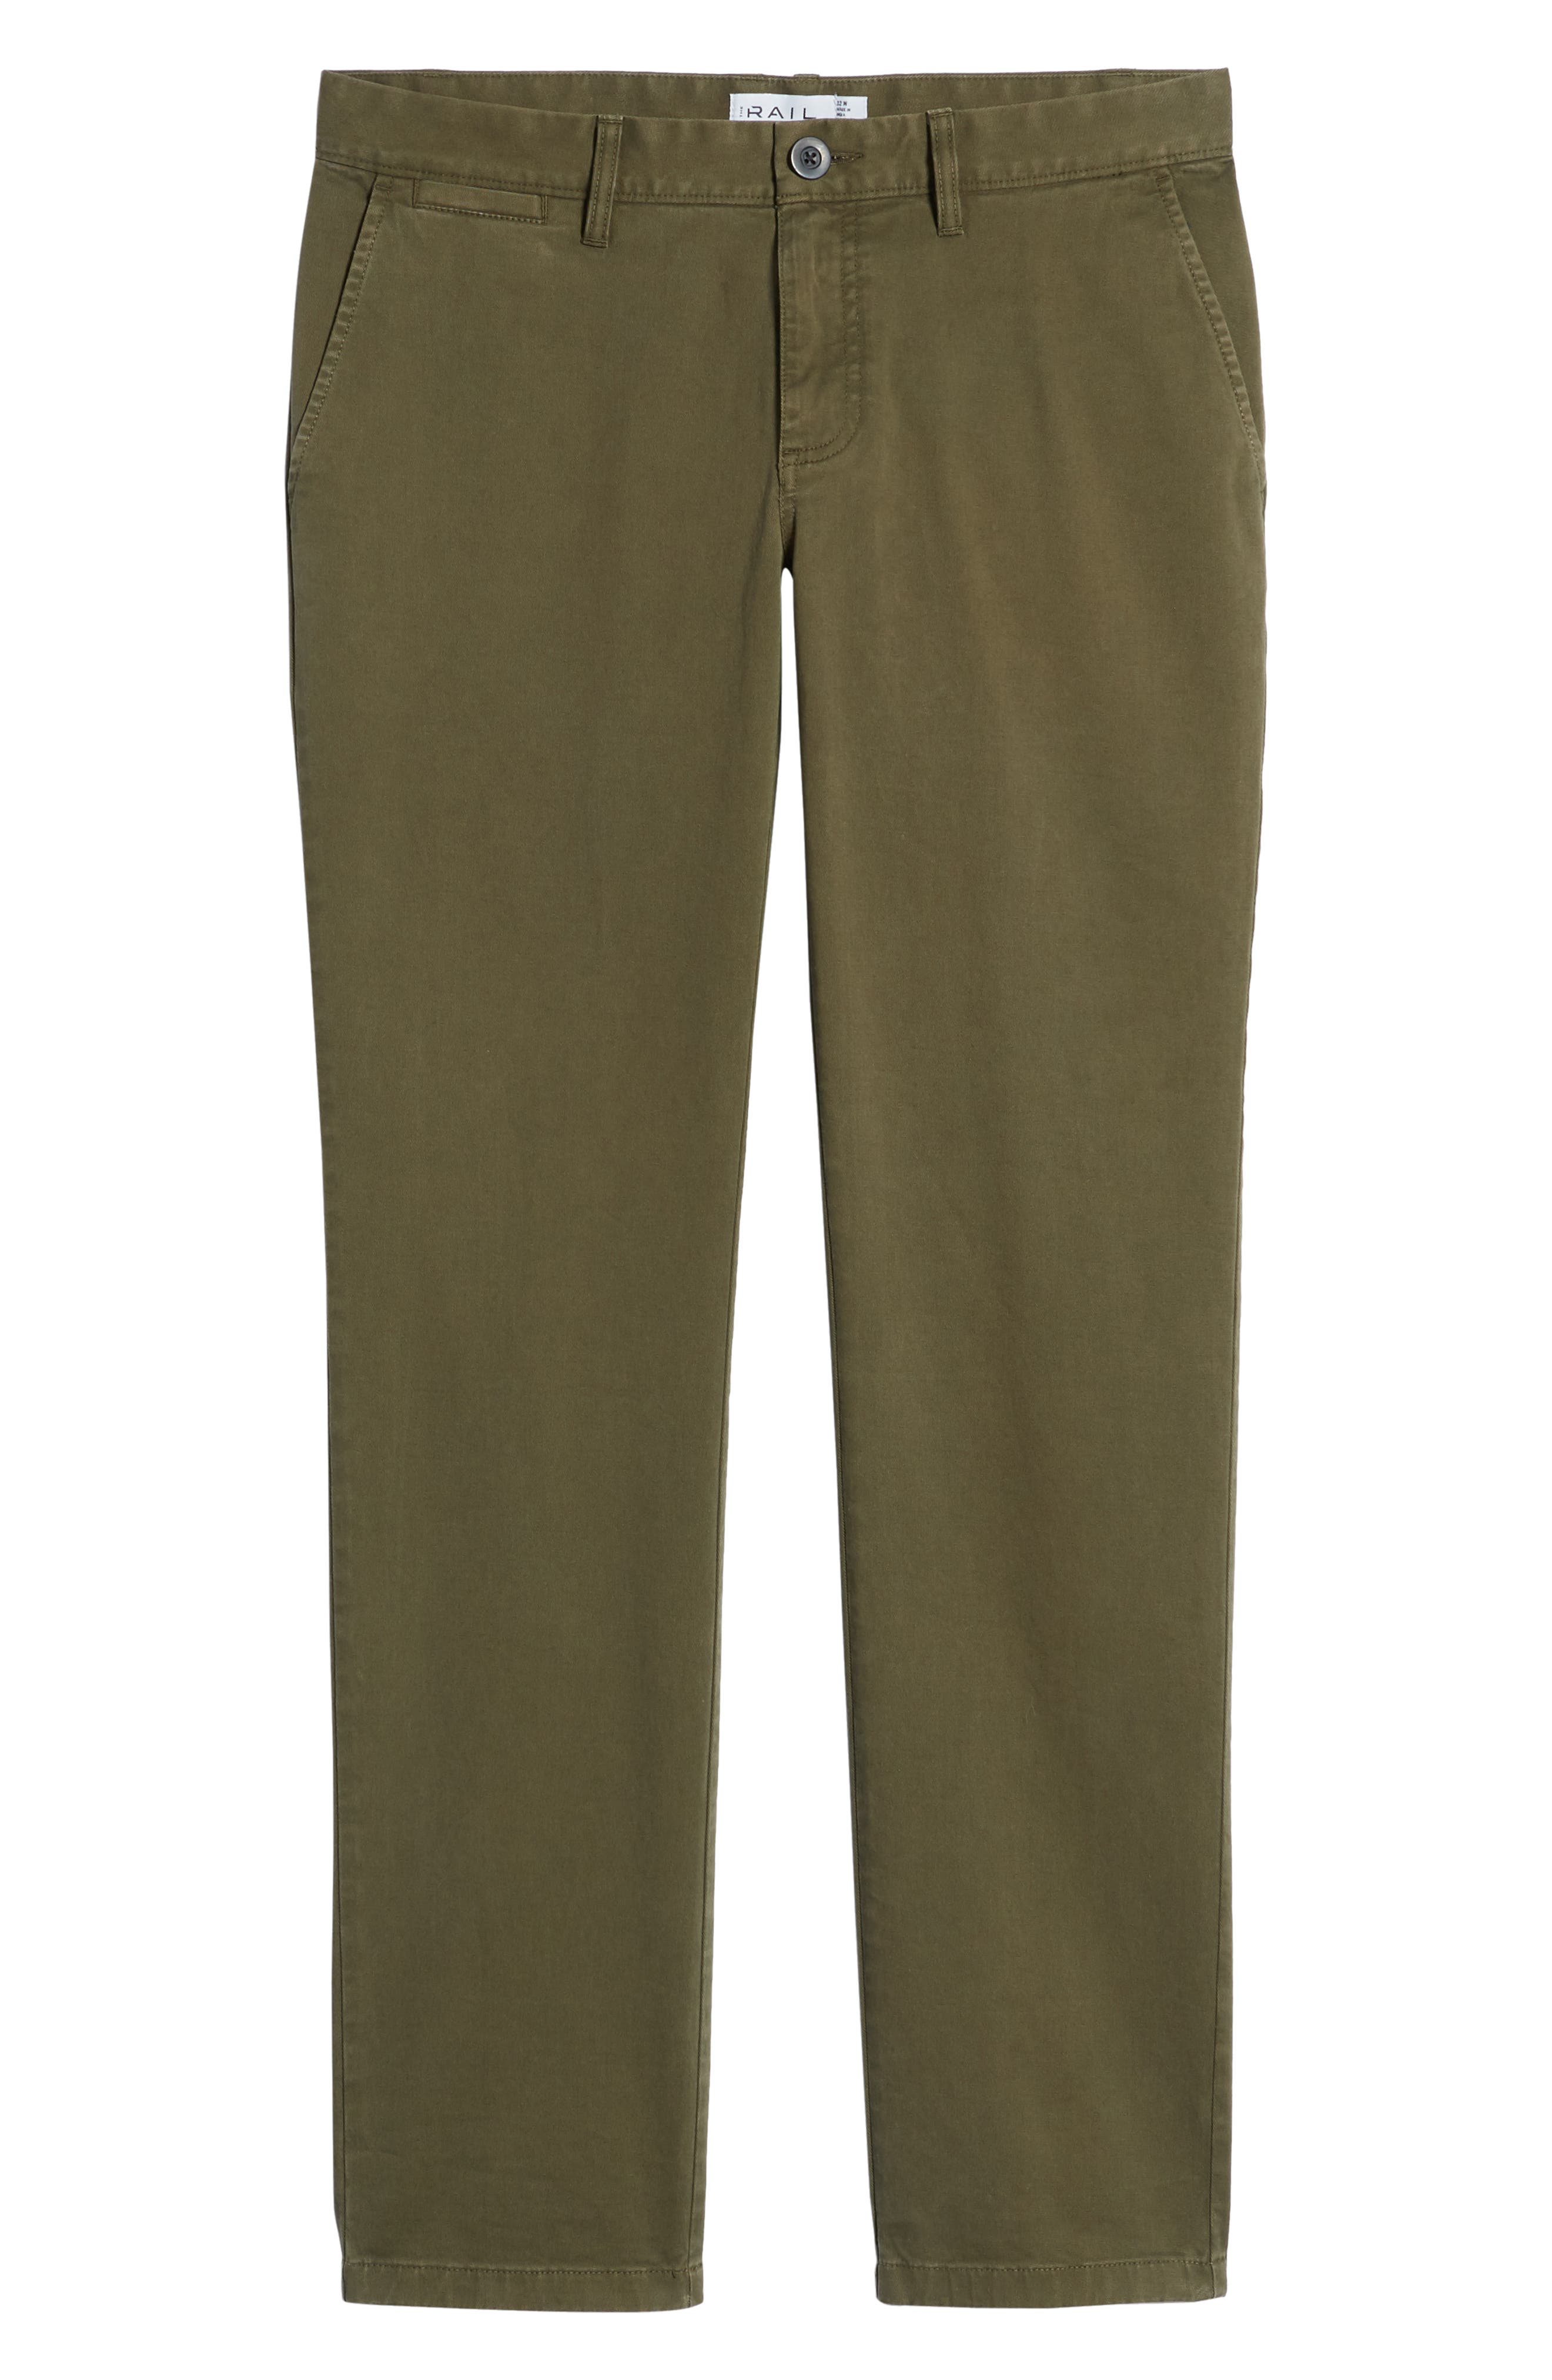 THE RAIL, Slim Fit Chinos, Alternate thumbnail 7, color, OLIVE GROVE